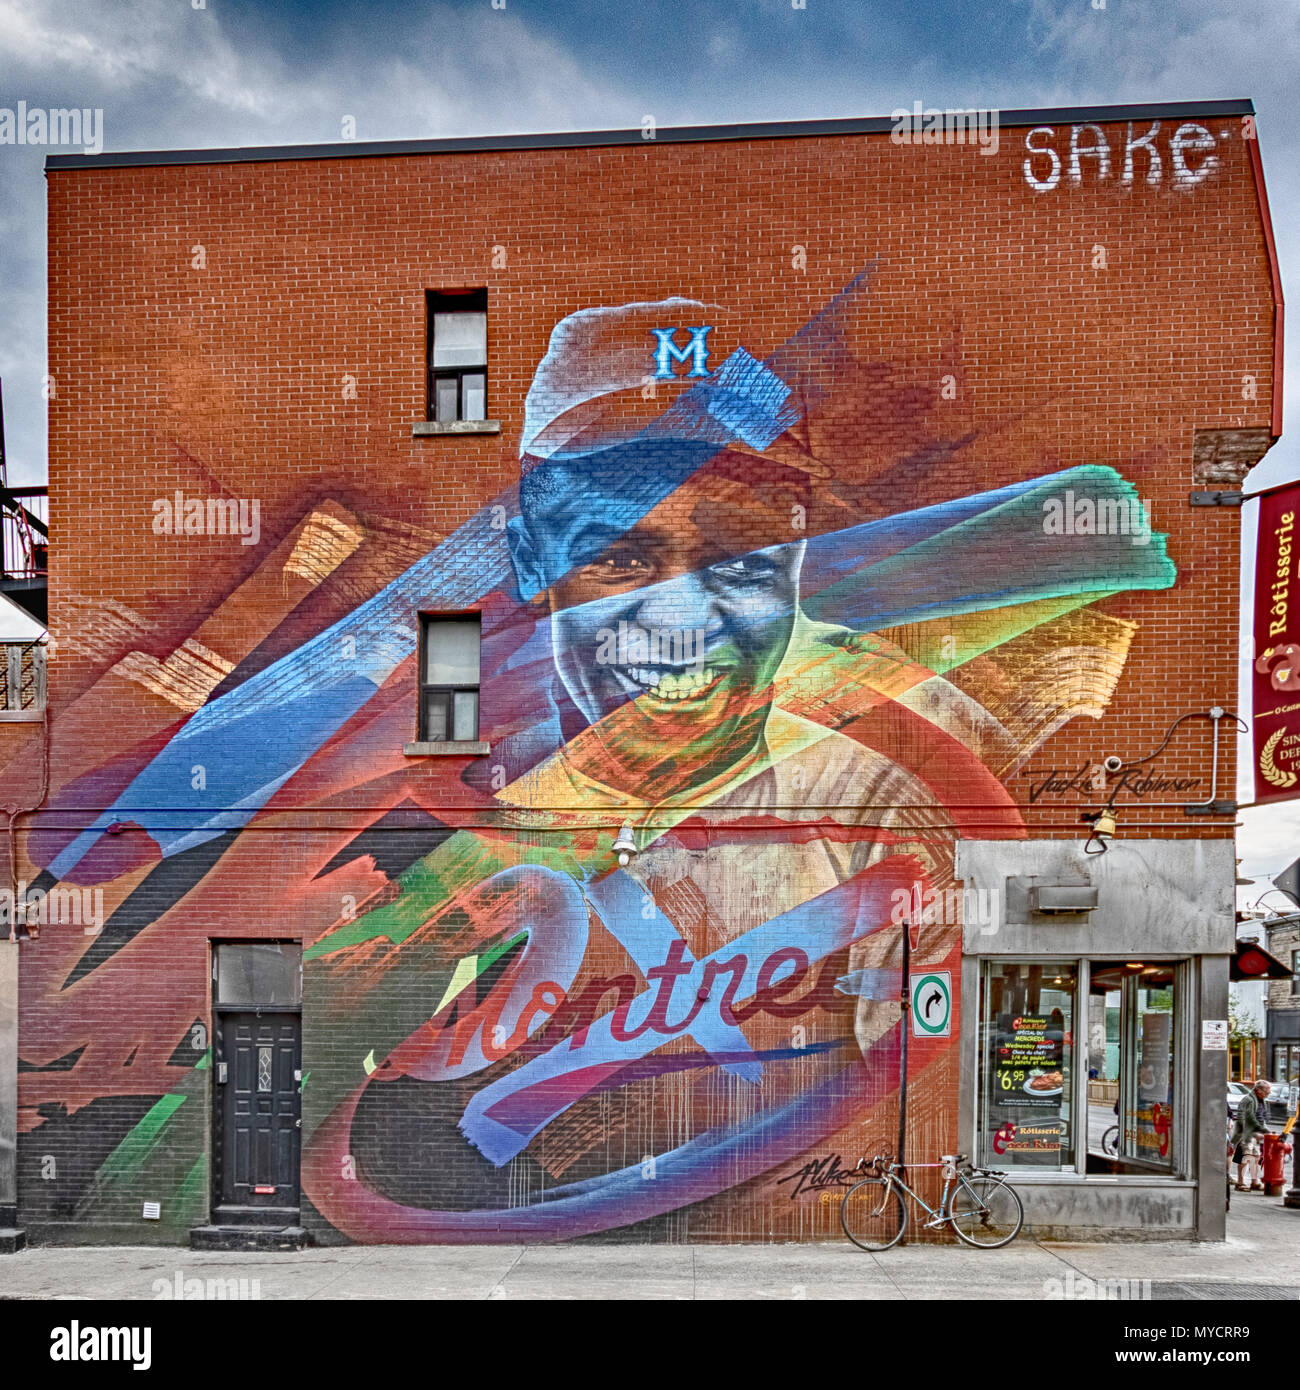 Abstract Graffiti in Montreal. - Stock Image